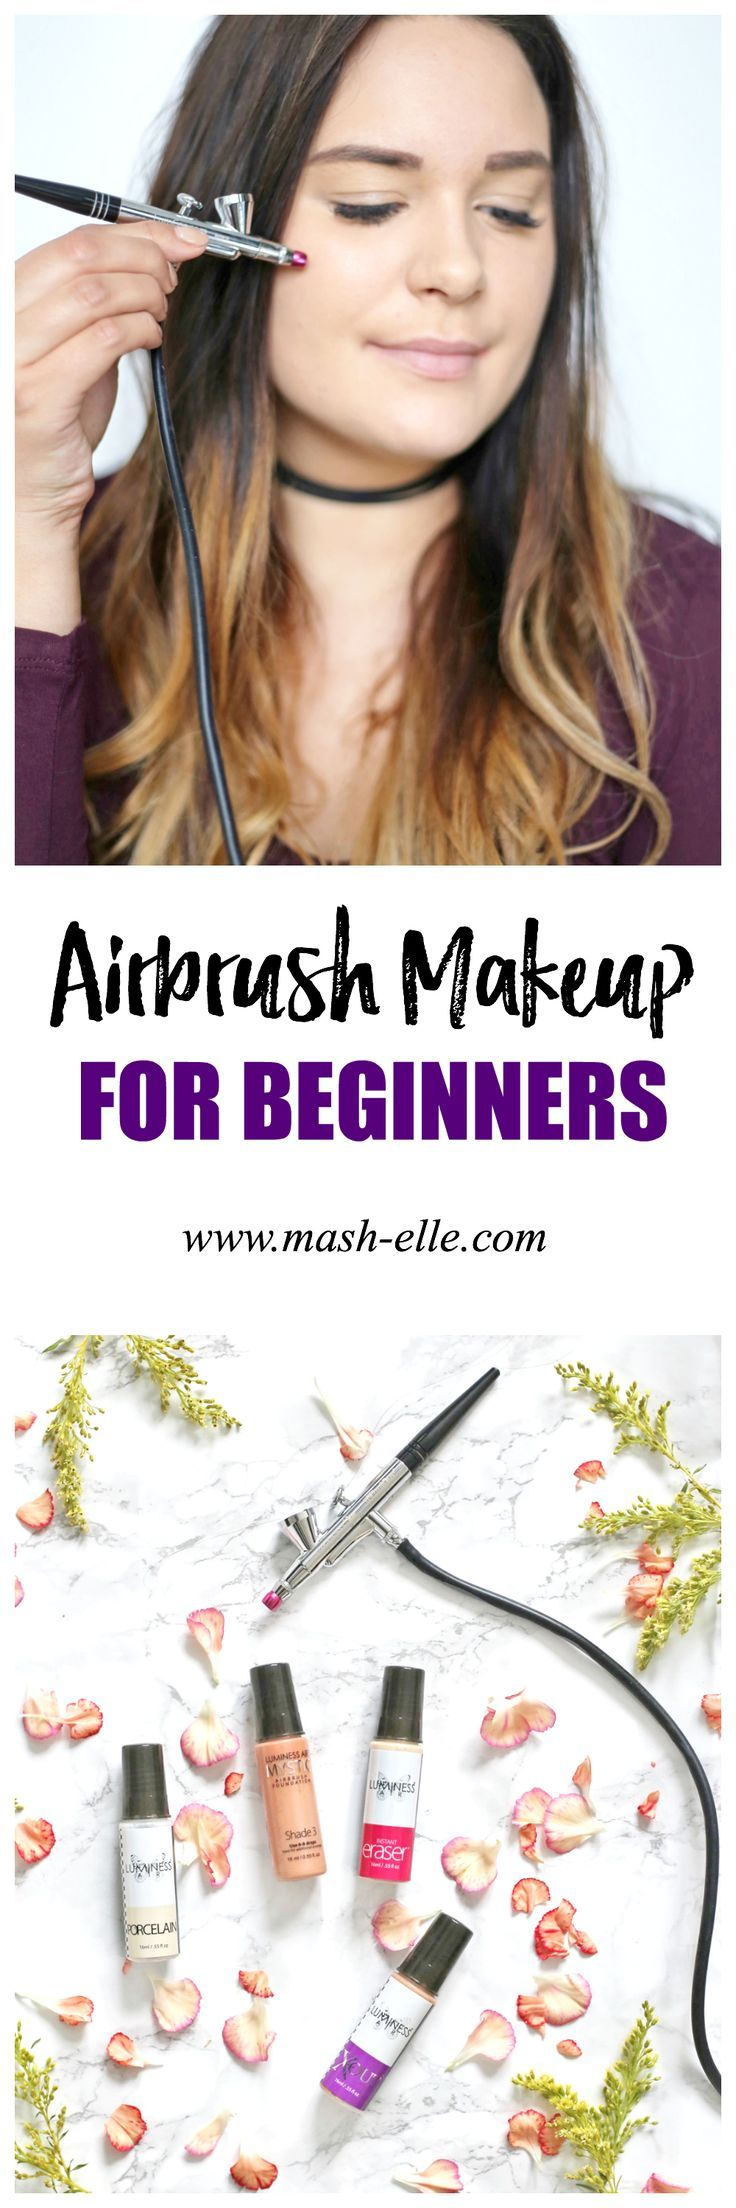 An easy beginner's guide to airbrush makeup! What products you need and how to achieve flawless skin! | Beauty blogger Mash Elle demonstrates how to apply airbrush makeup for a natural makeup look! The perfect Christmas or birthday gift for the women in your life: your mom, sister, aunt, friend etc! #ad